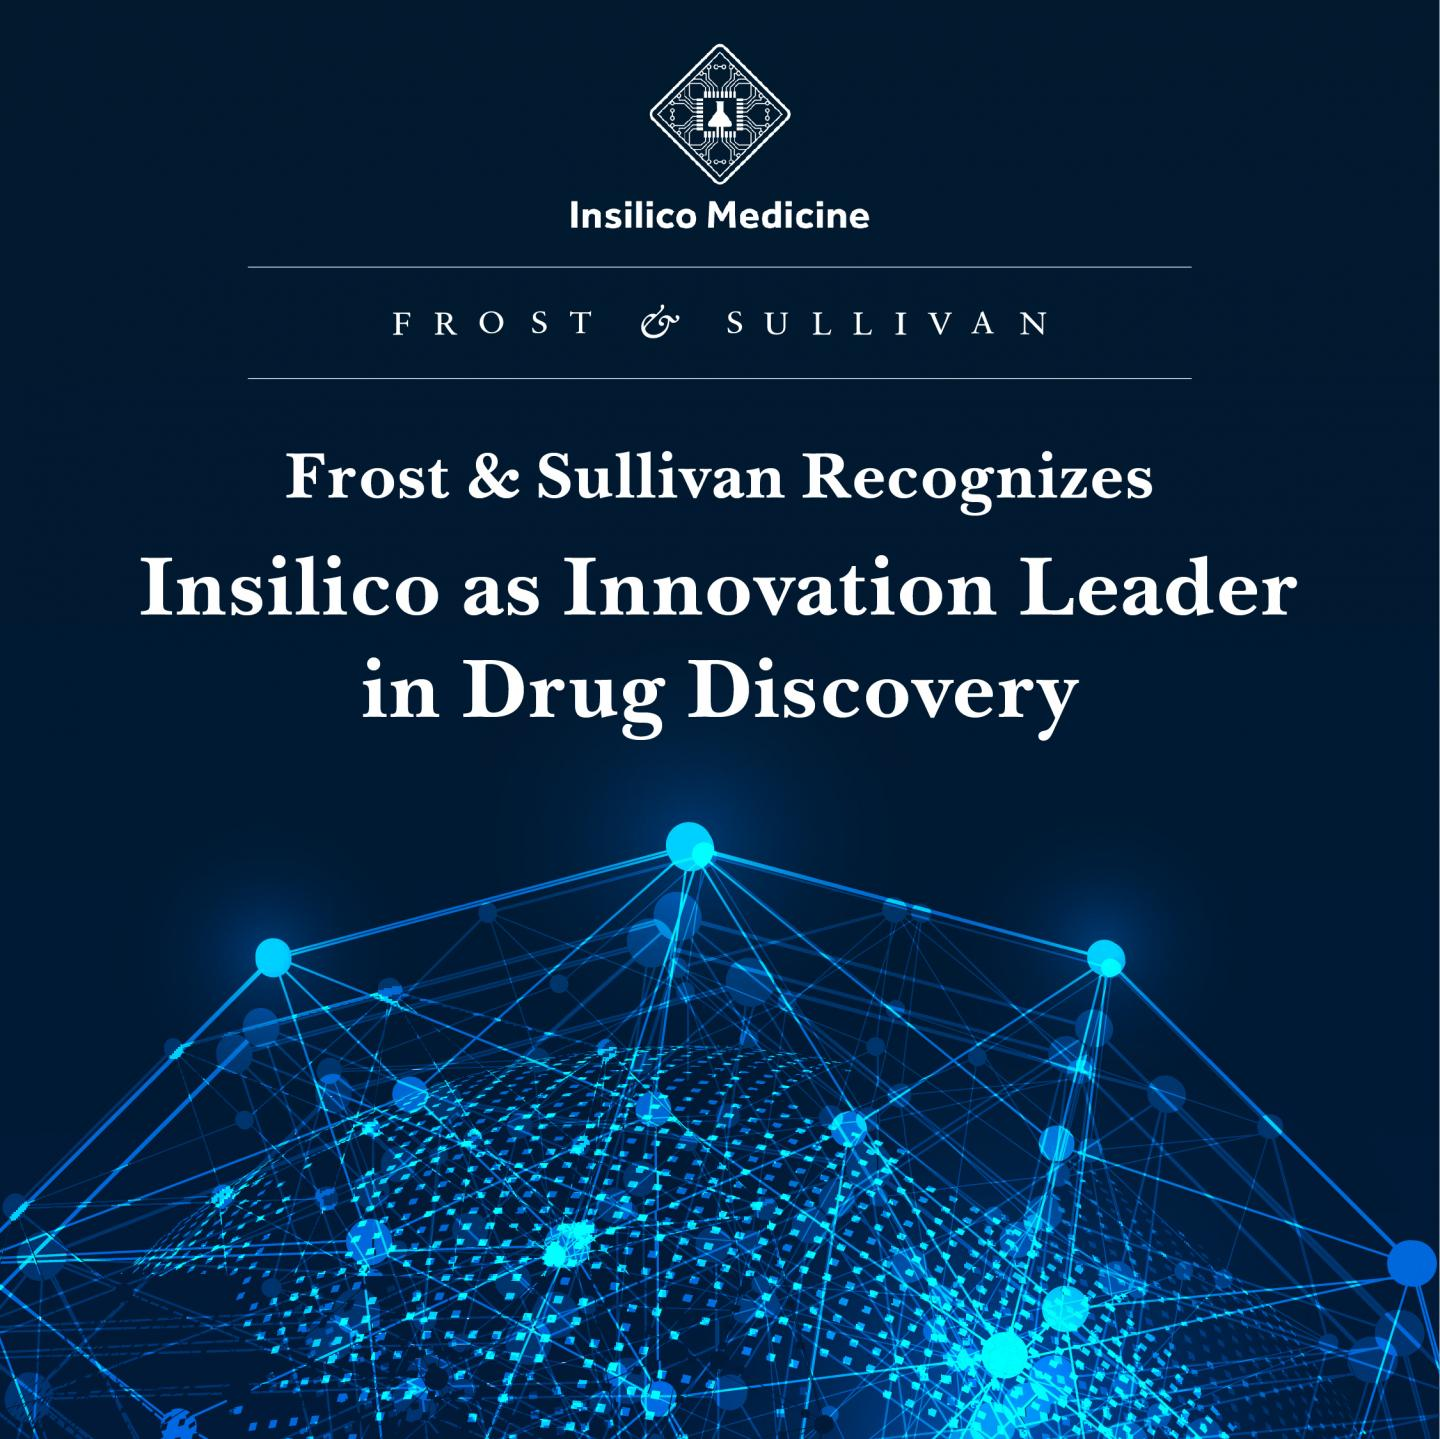 Frost & Sullivan Recognizes Insilico as Innovation Leader in Drug Discovery